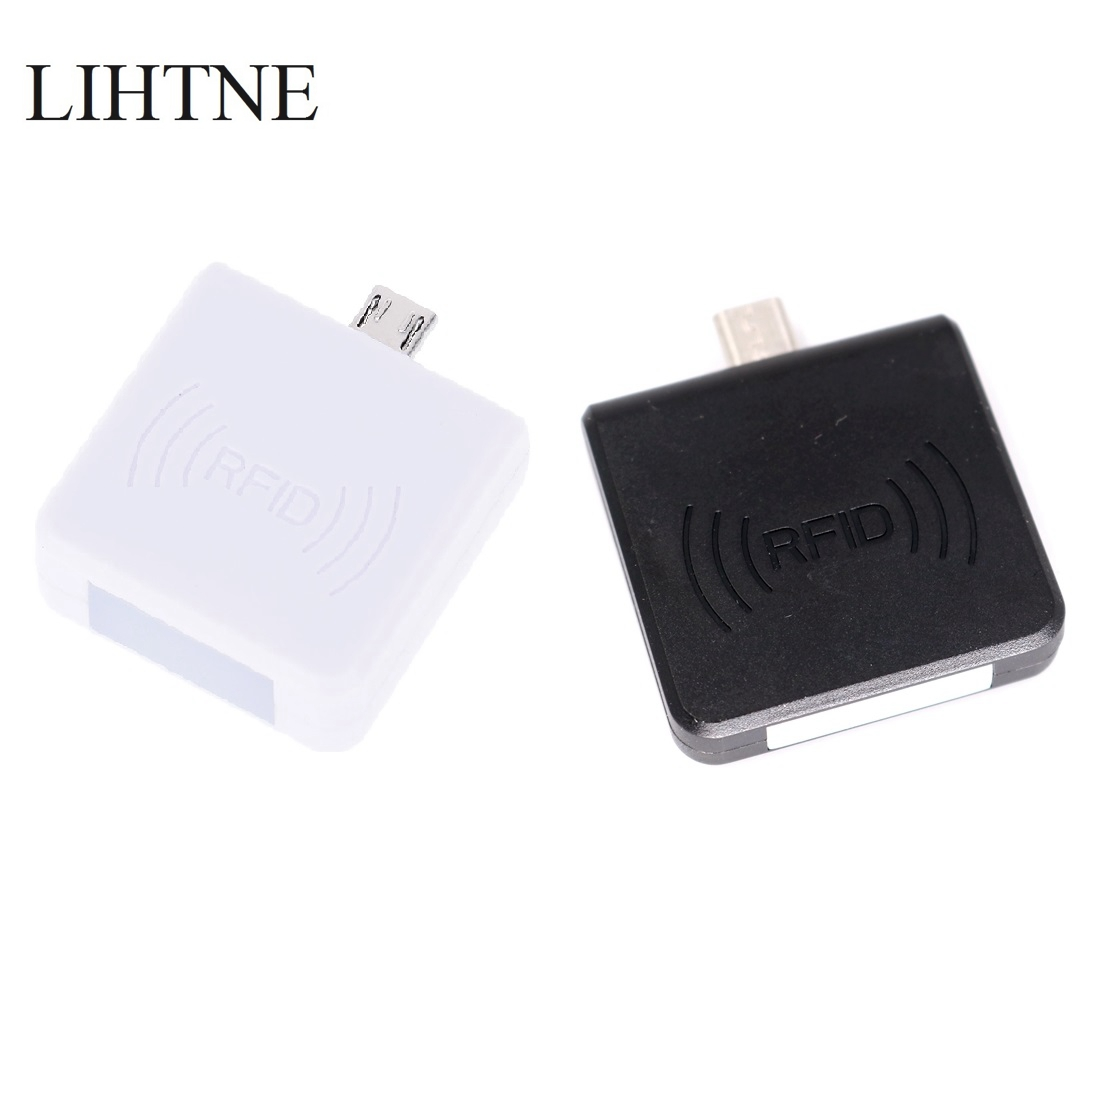 RFID 13.56Mhz ISO14443A IC NFC Reader Portable Mirco USB Card Reader for Android Phone